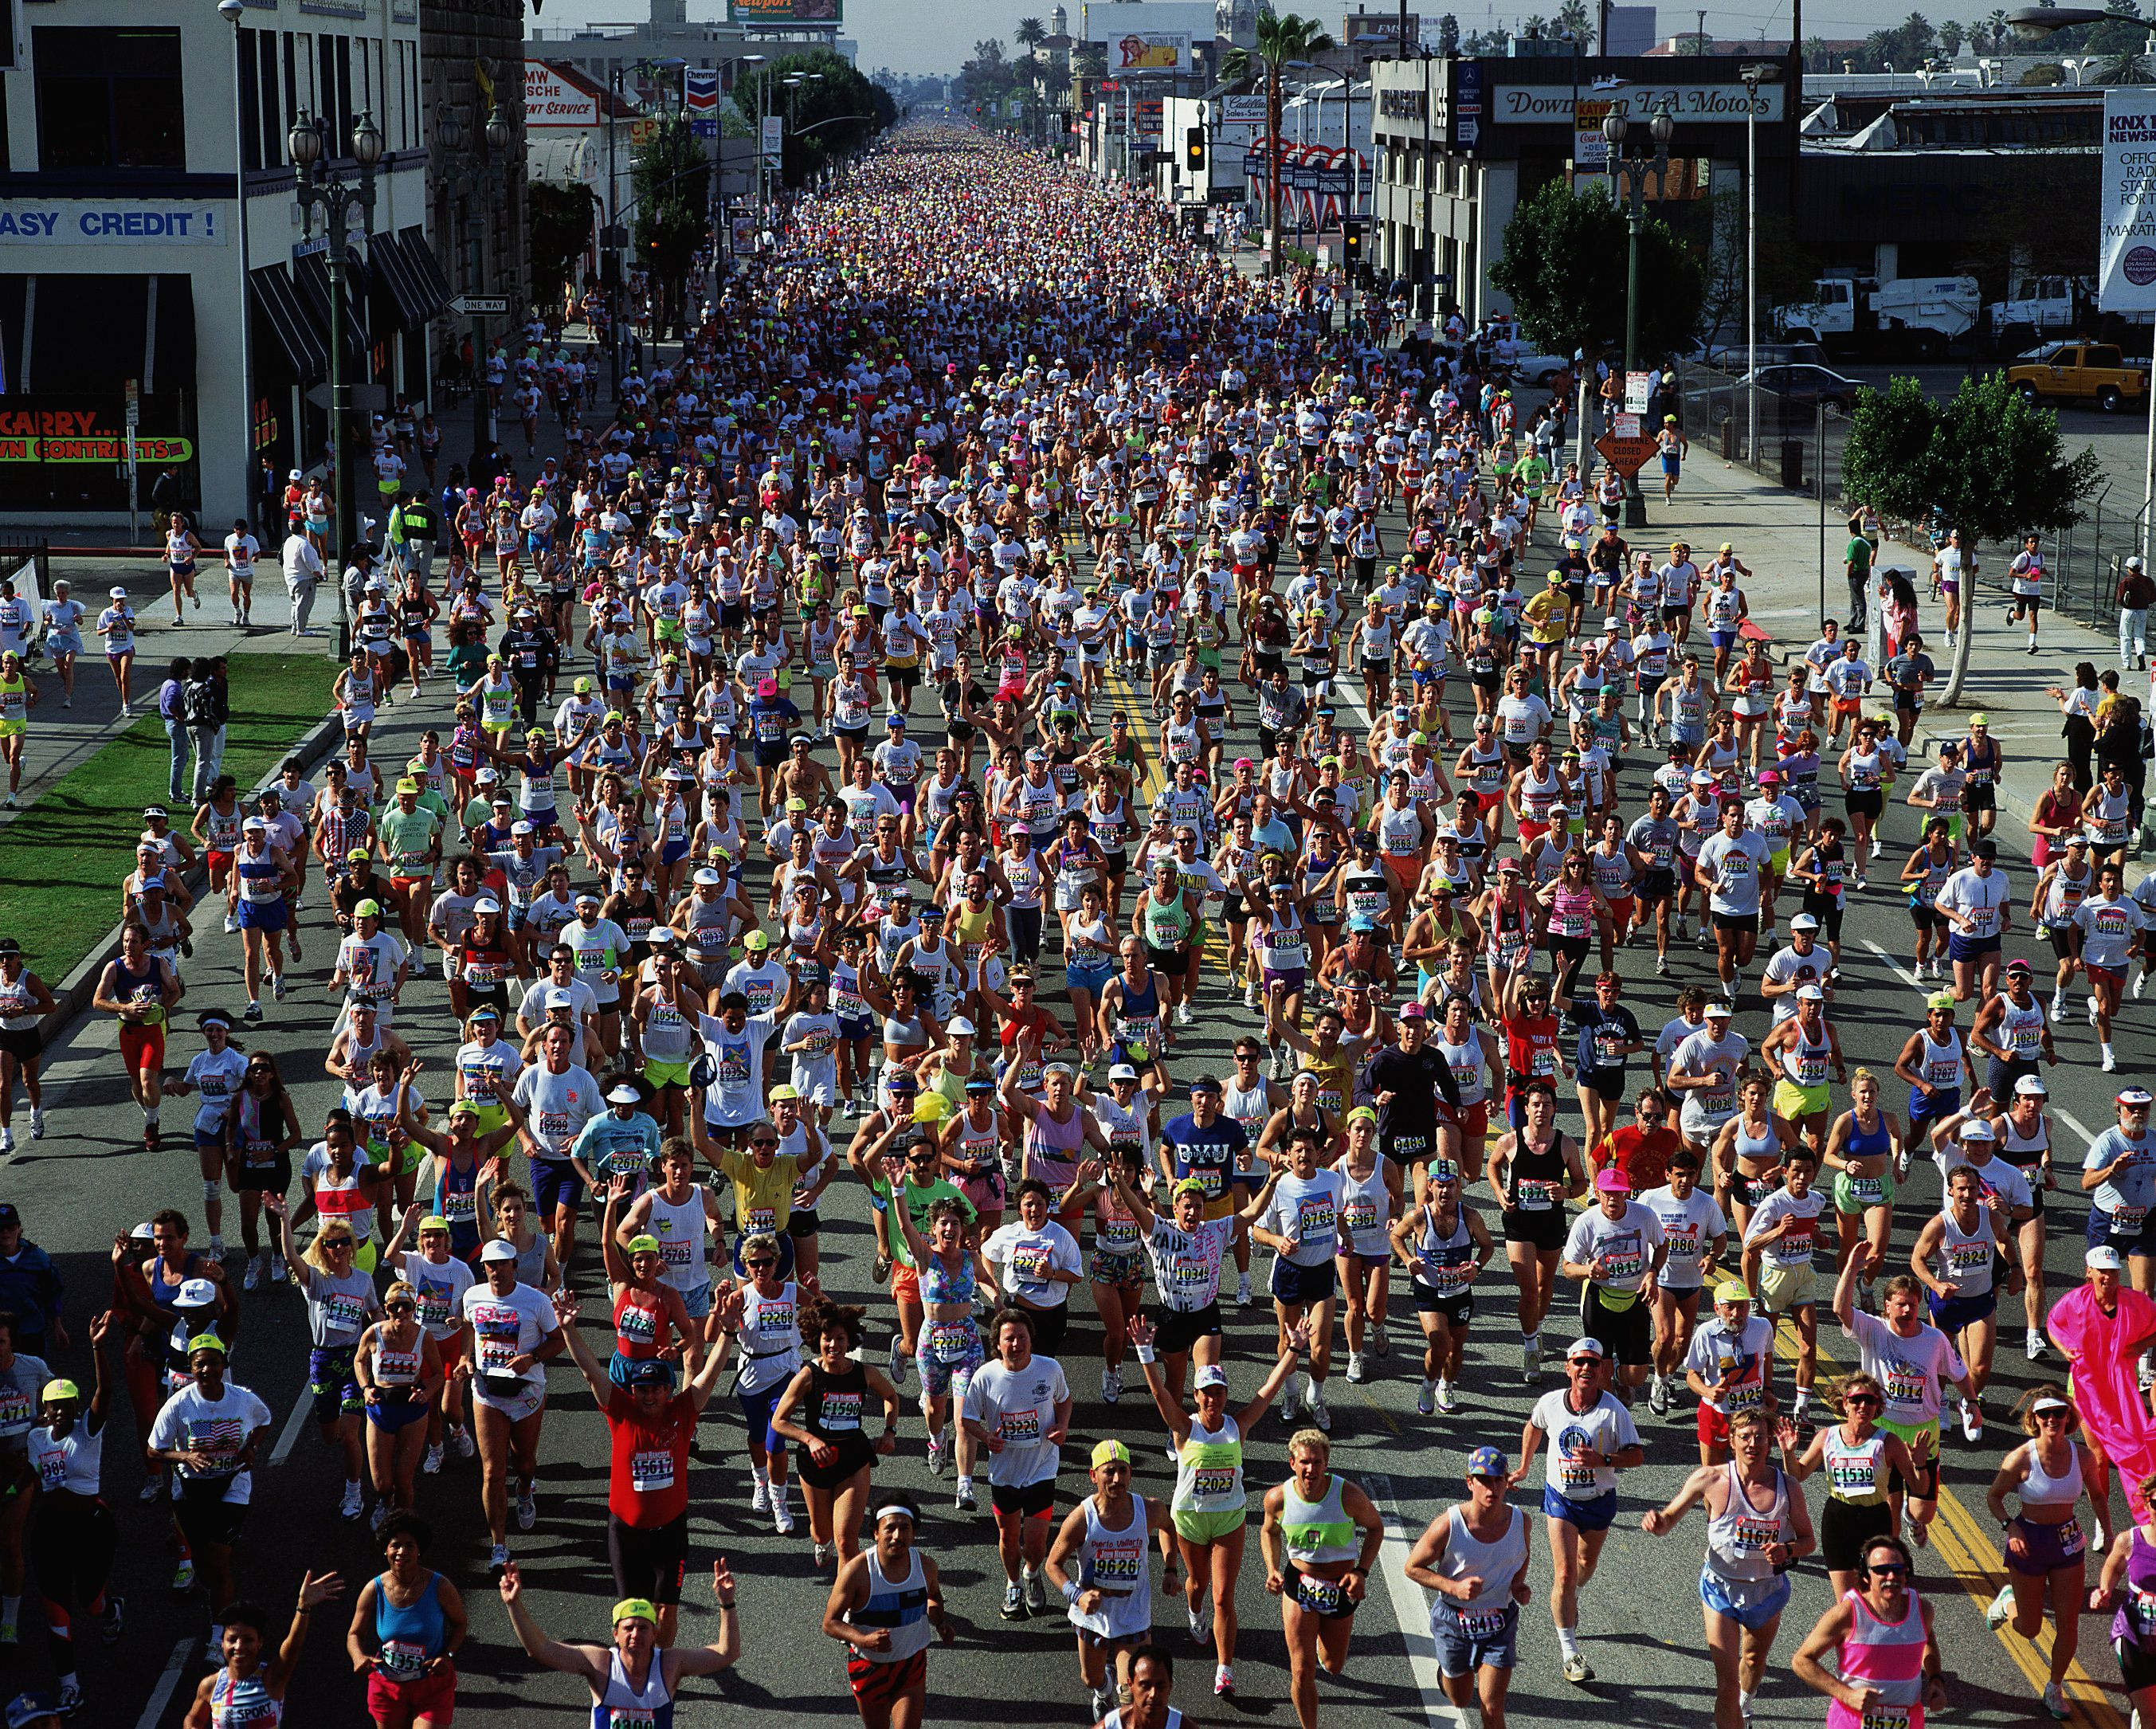 Runners in the Los Angeles Marathon